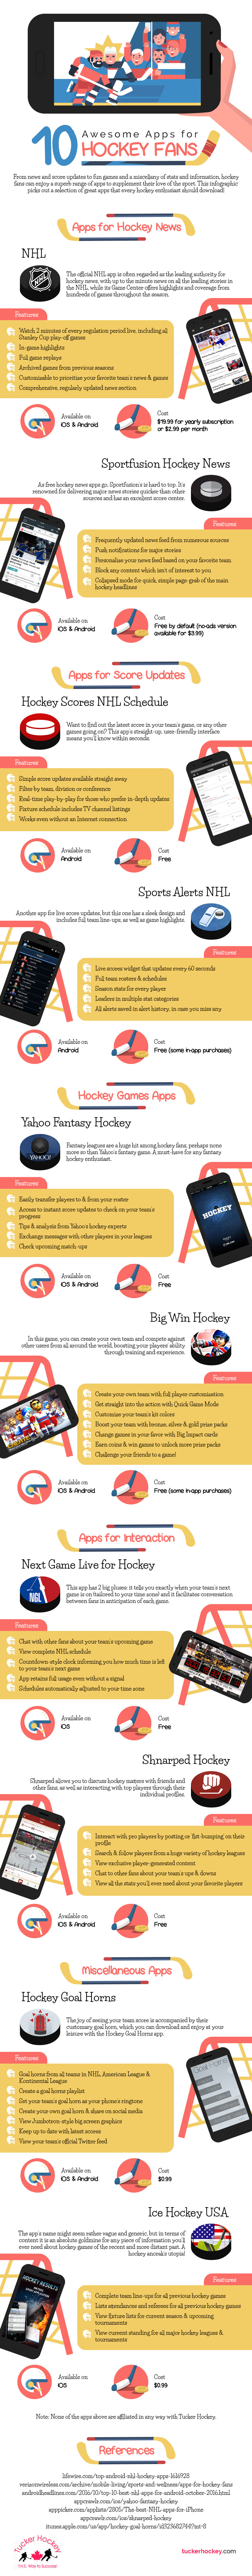 Top 10 Best Hockey Apps for Android and iOS - Infographic